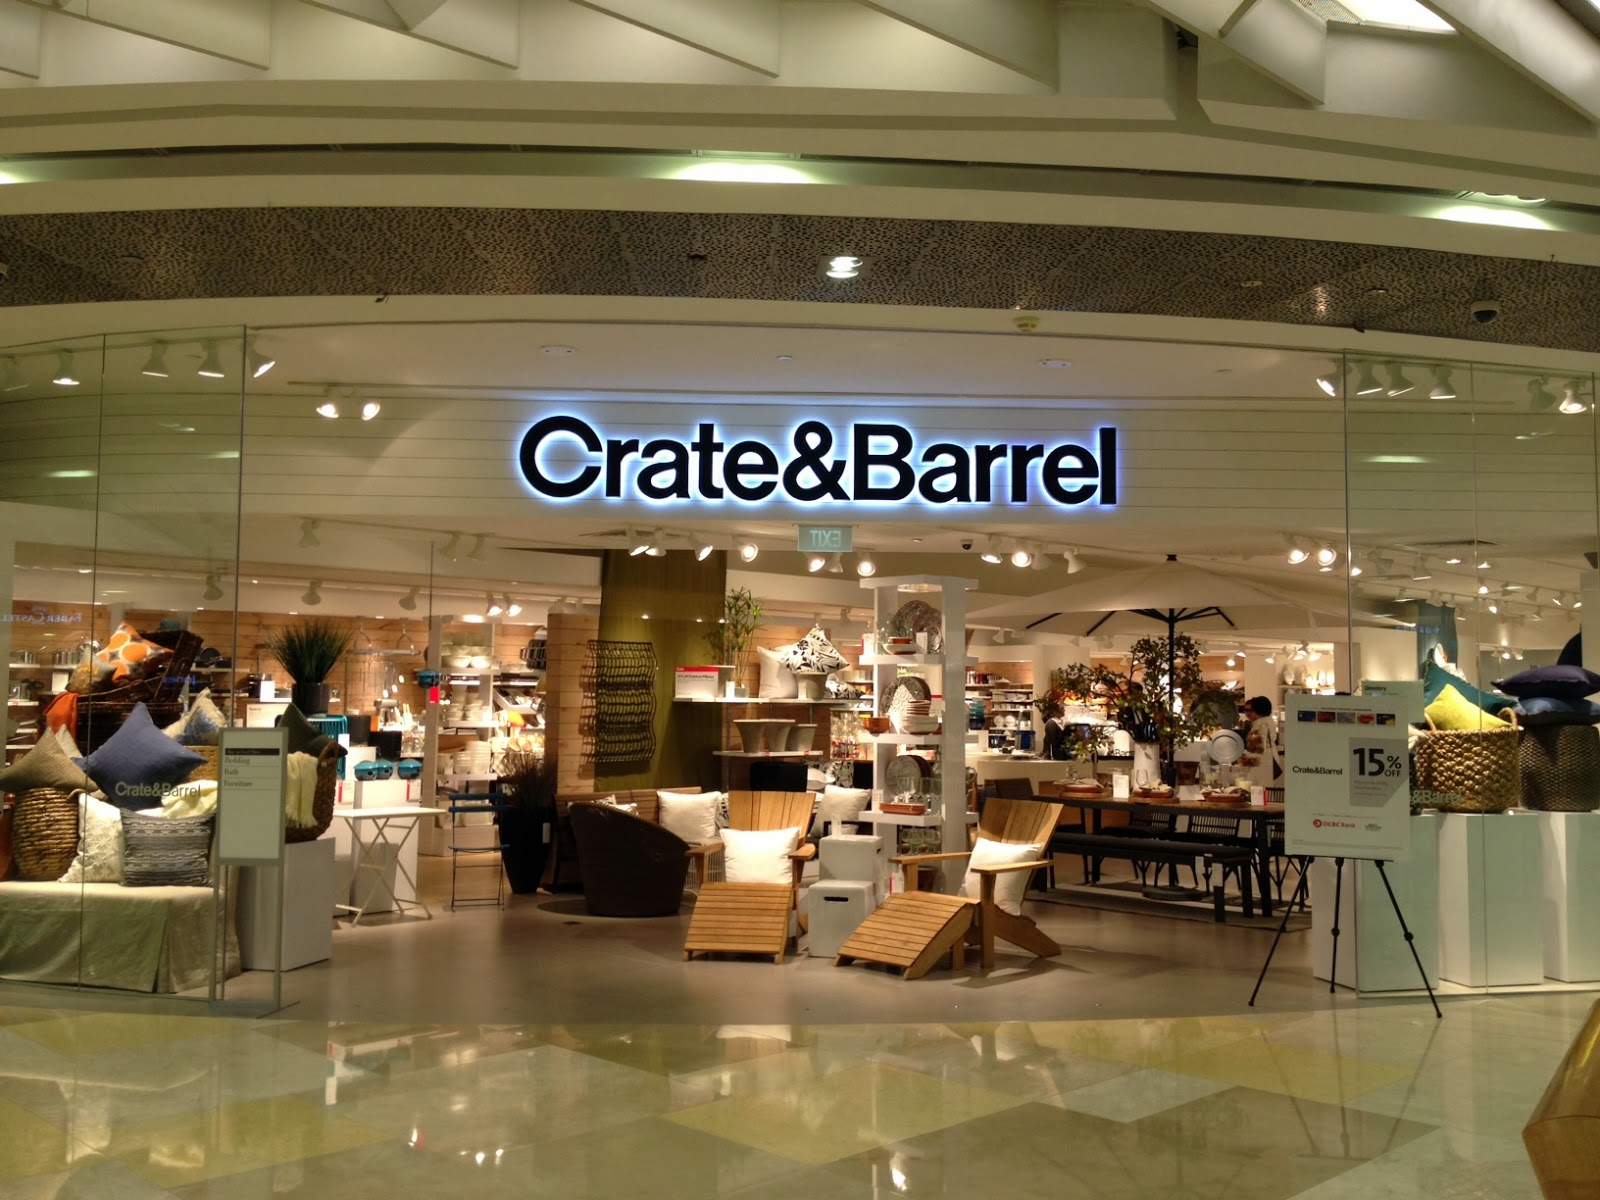 Save with Crate and Barrel coupons and promo codes for December on RetailMeNot. Today's top Crate and Barrel coupon: Up to 75% Off Clearance.